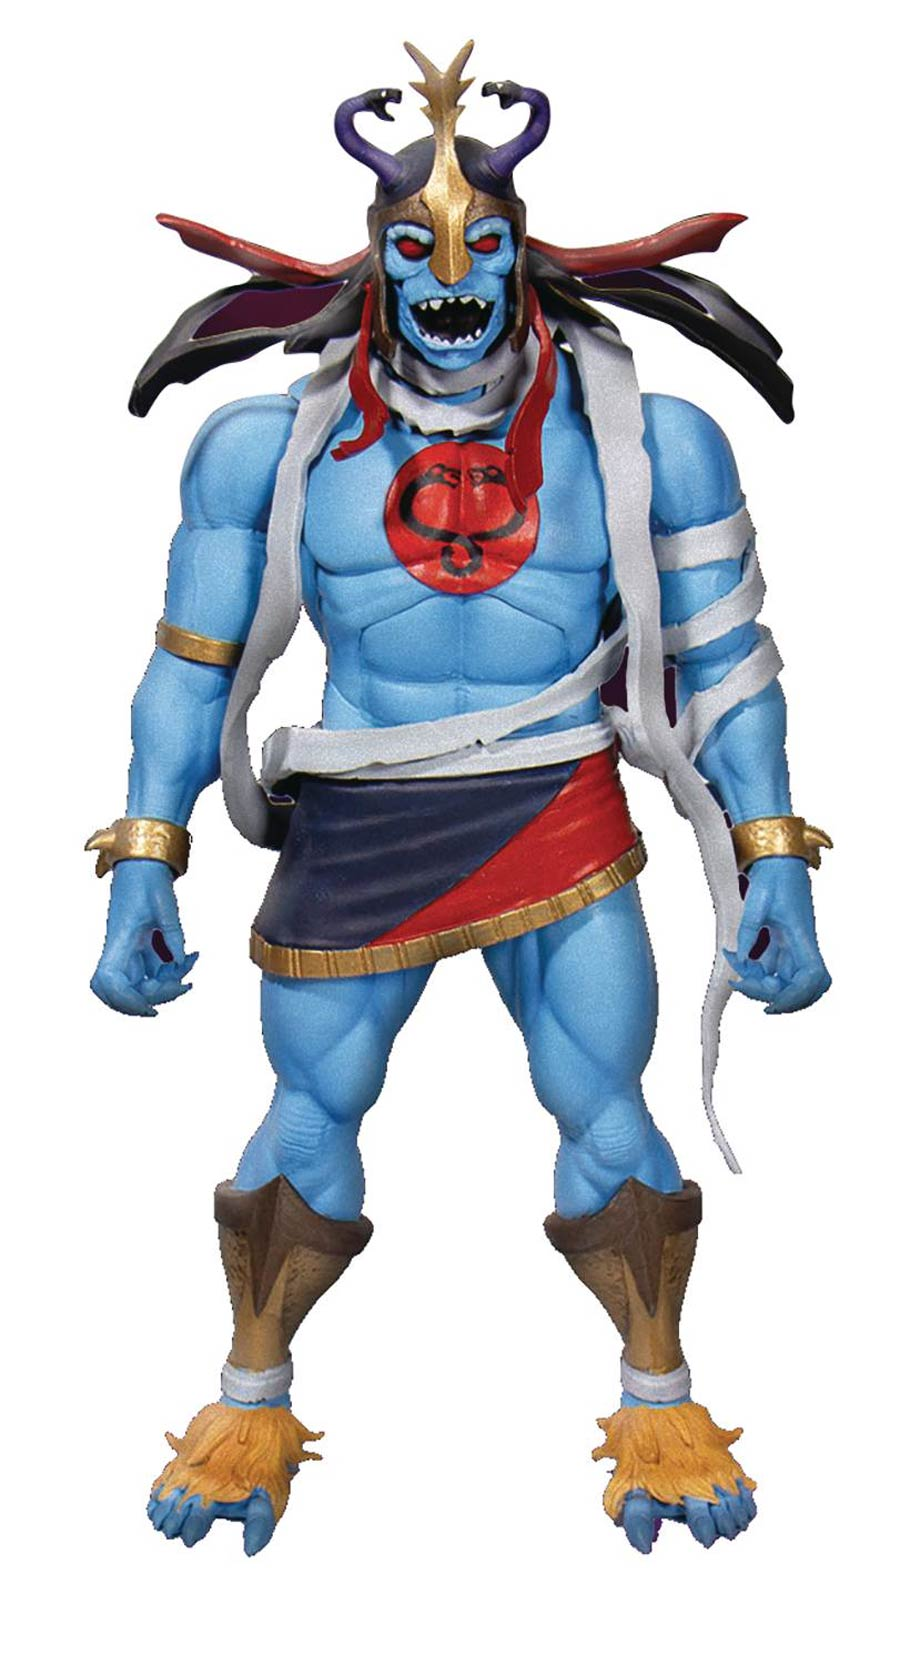 Thundercats Ultimates Wave 2 Mumm-Ra The Ever-Living Action Figure